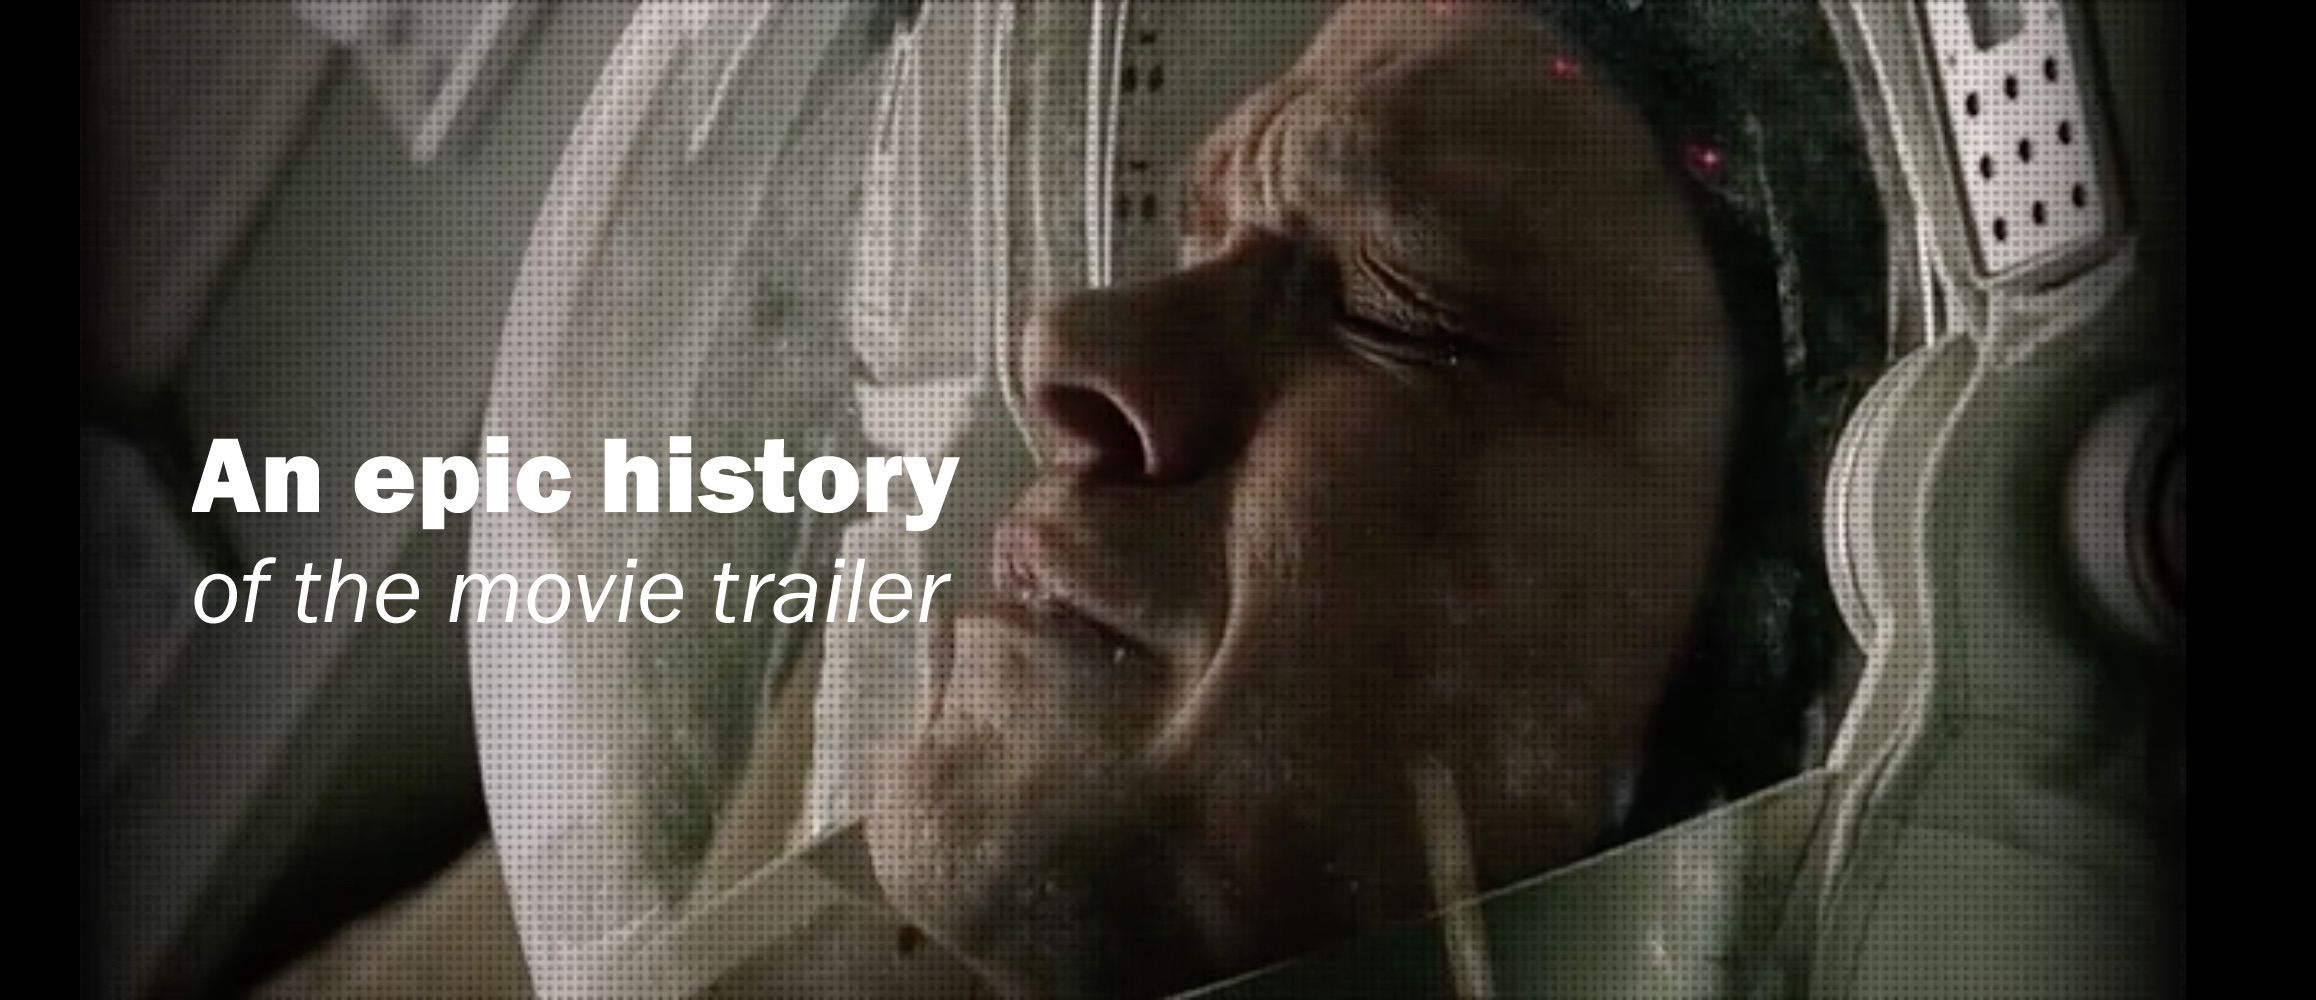 An epic history of the movie trailer